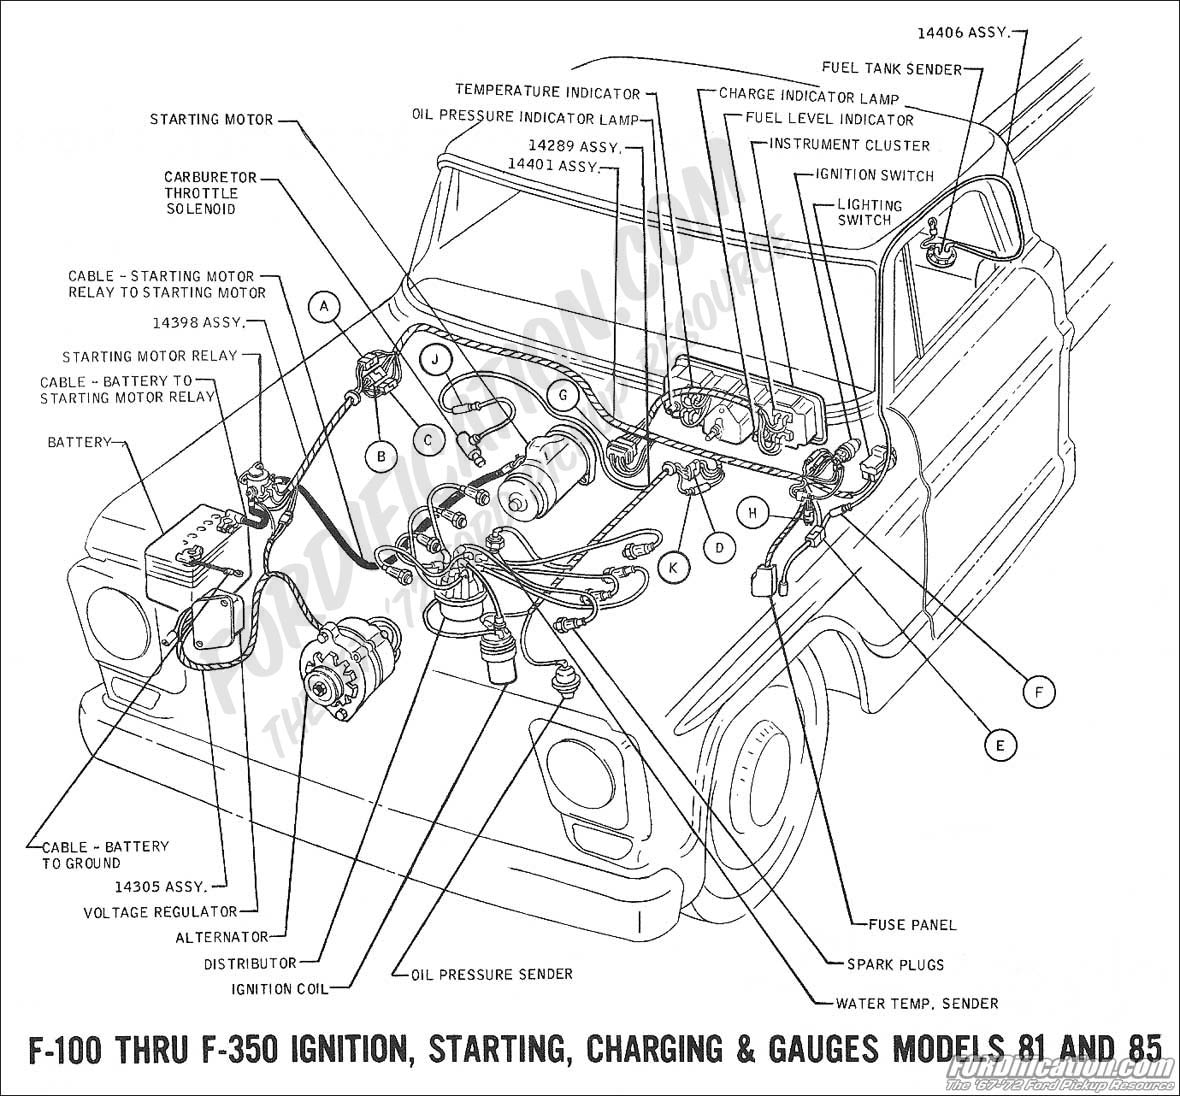 1973 Mustang Ignition Switch Wiring Diagram Schematic Diagrams F100 Charging Starting Electrical 66